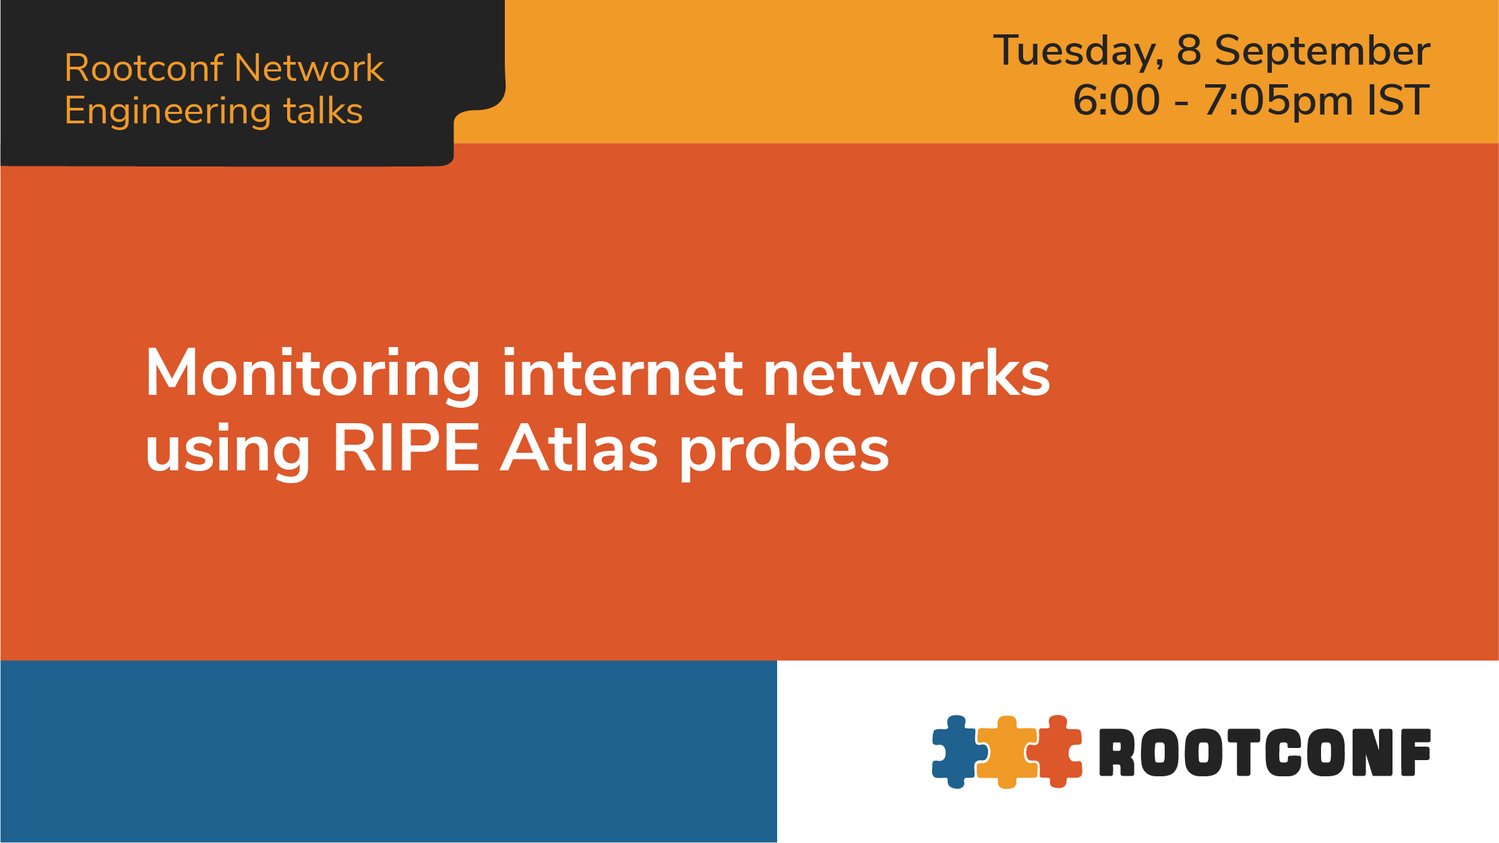 Monitoring internet networks using RIPE Atlas probes